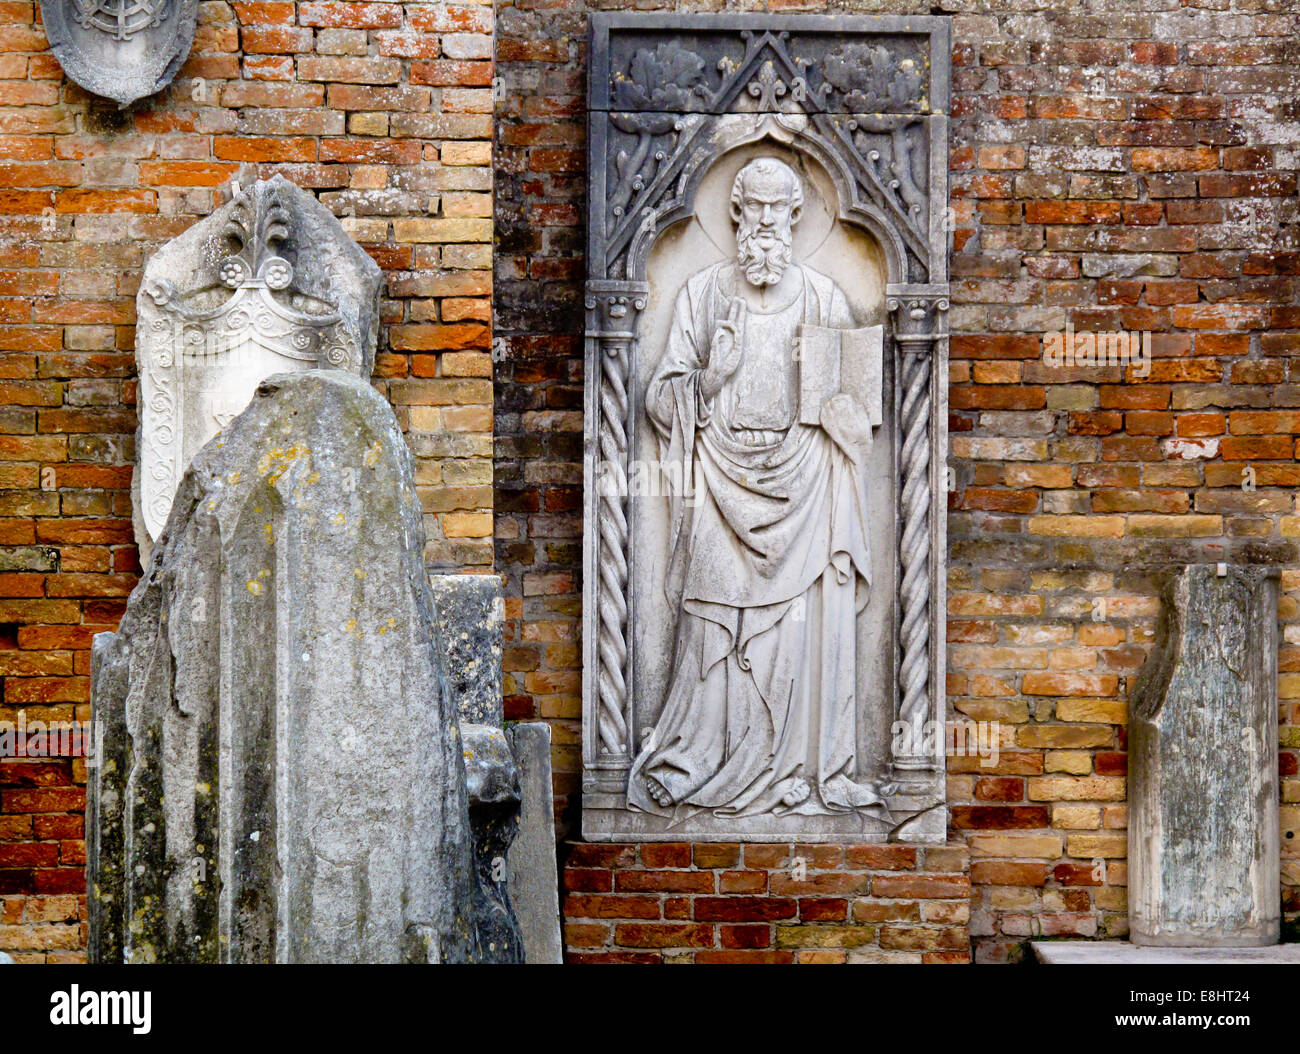 Religious artefacts at the cathedral on Torcello an island in the Venice Lagoon or Laguna Veneto in northern Italy - Stock Image